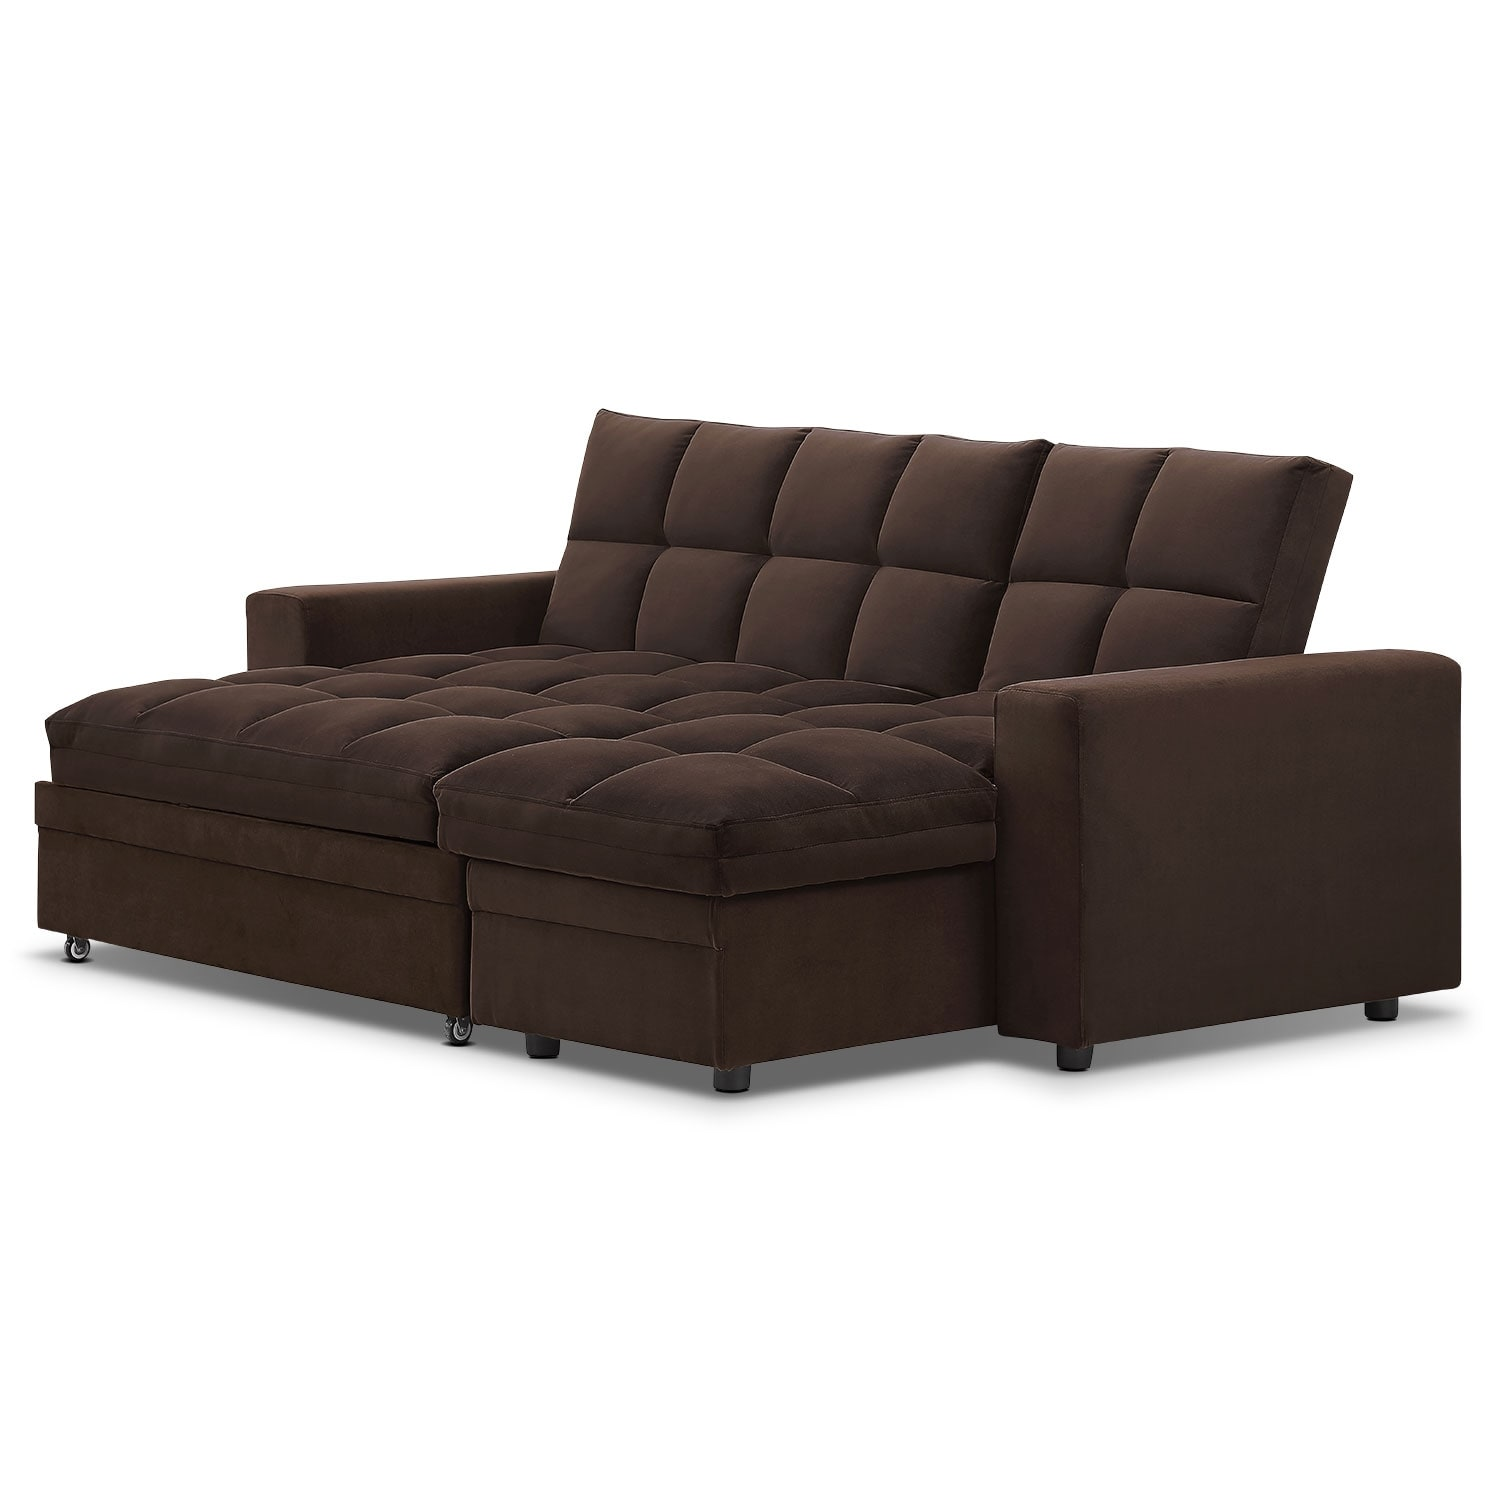 Metro chaise sofa bed with storage brown value city for Furniture sofa bed